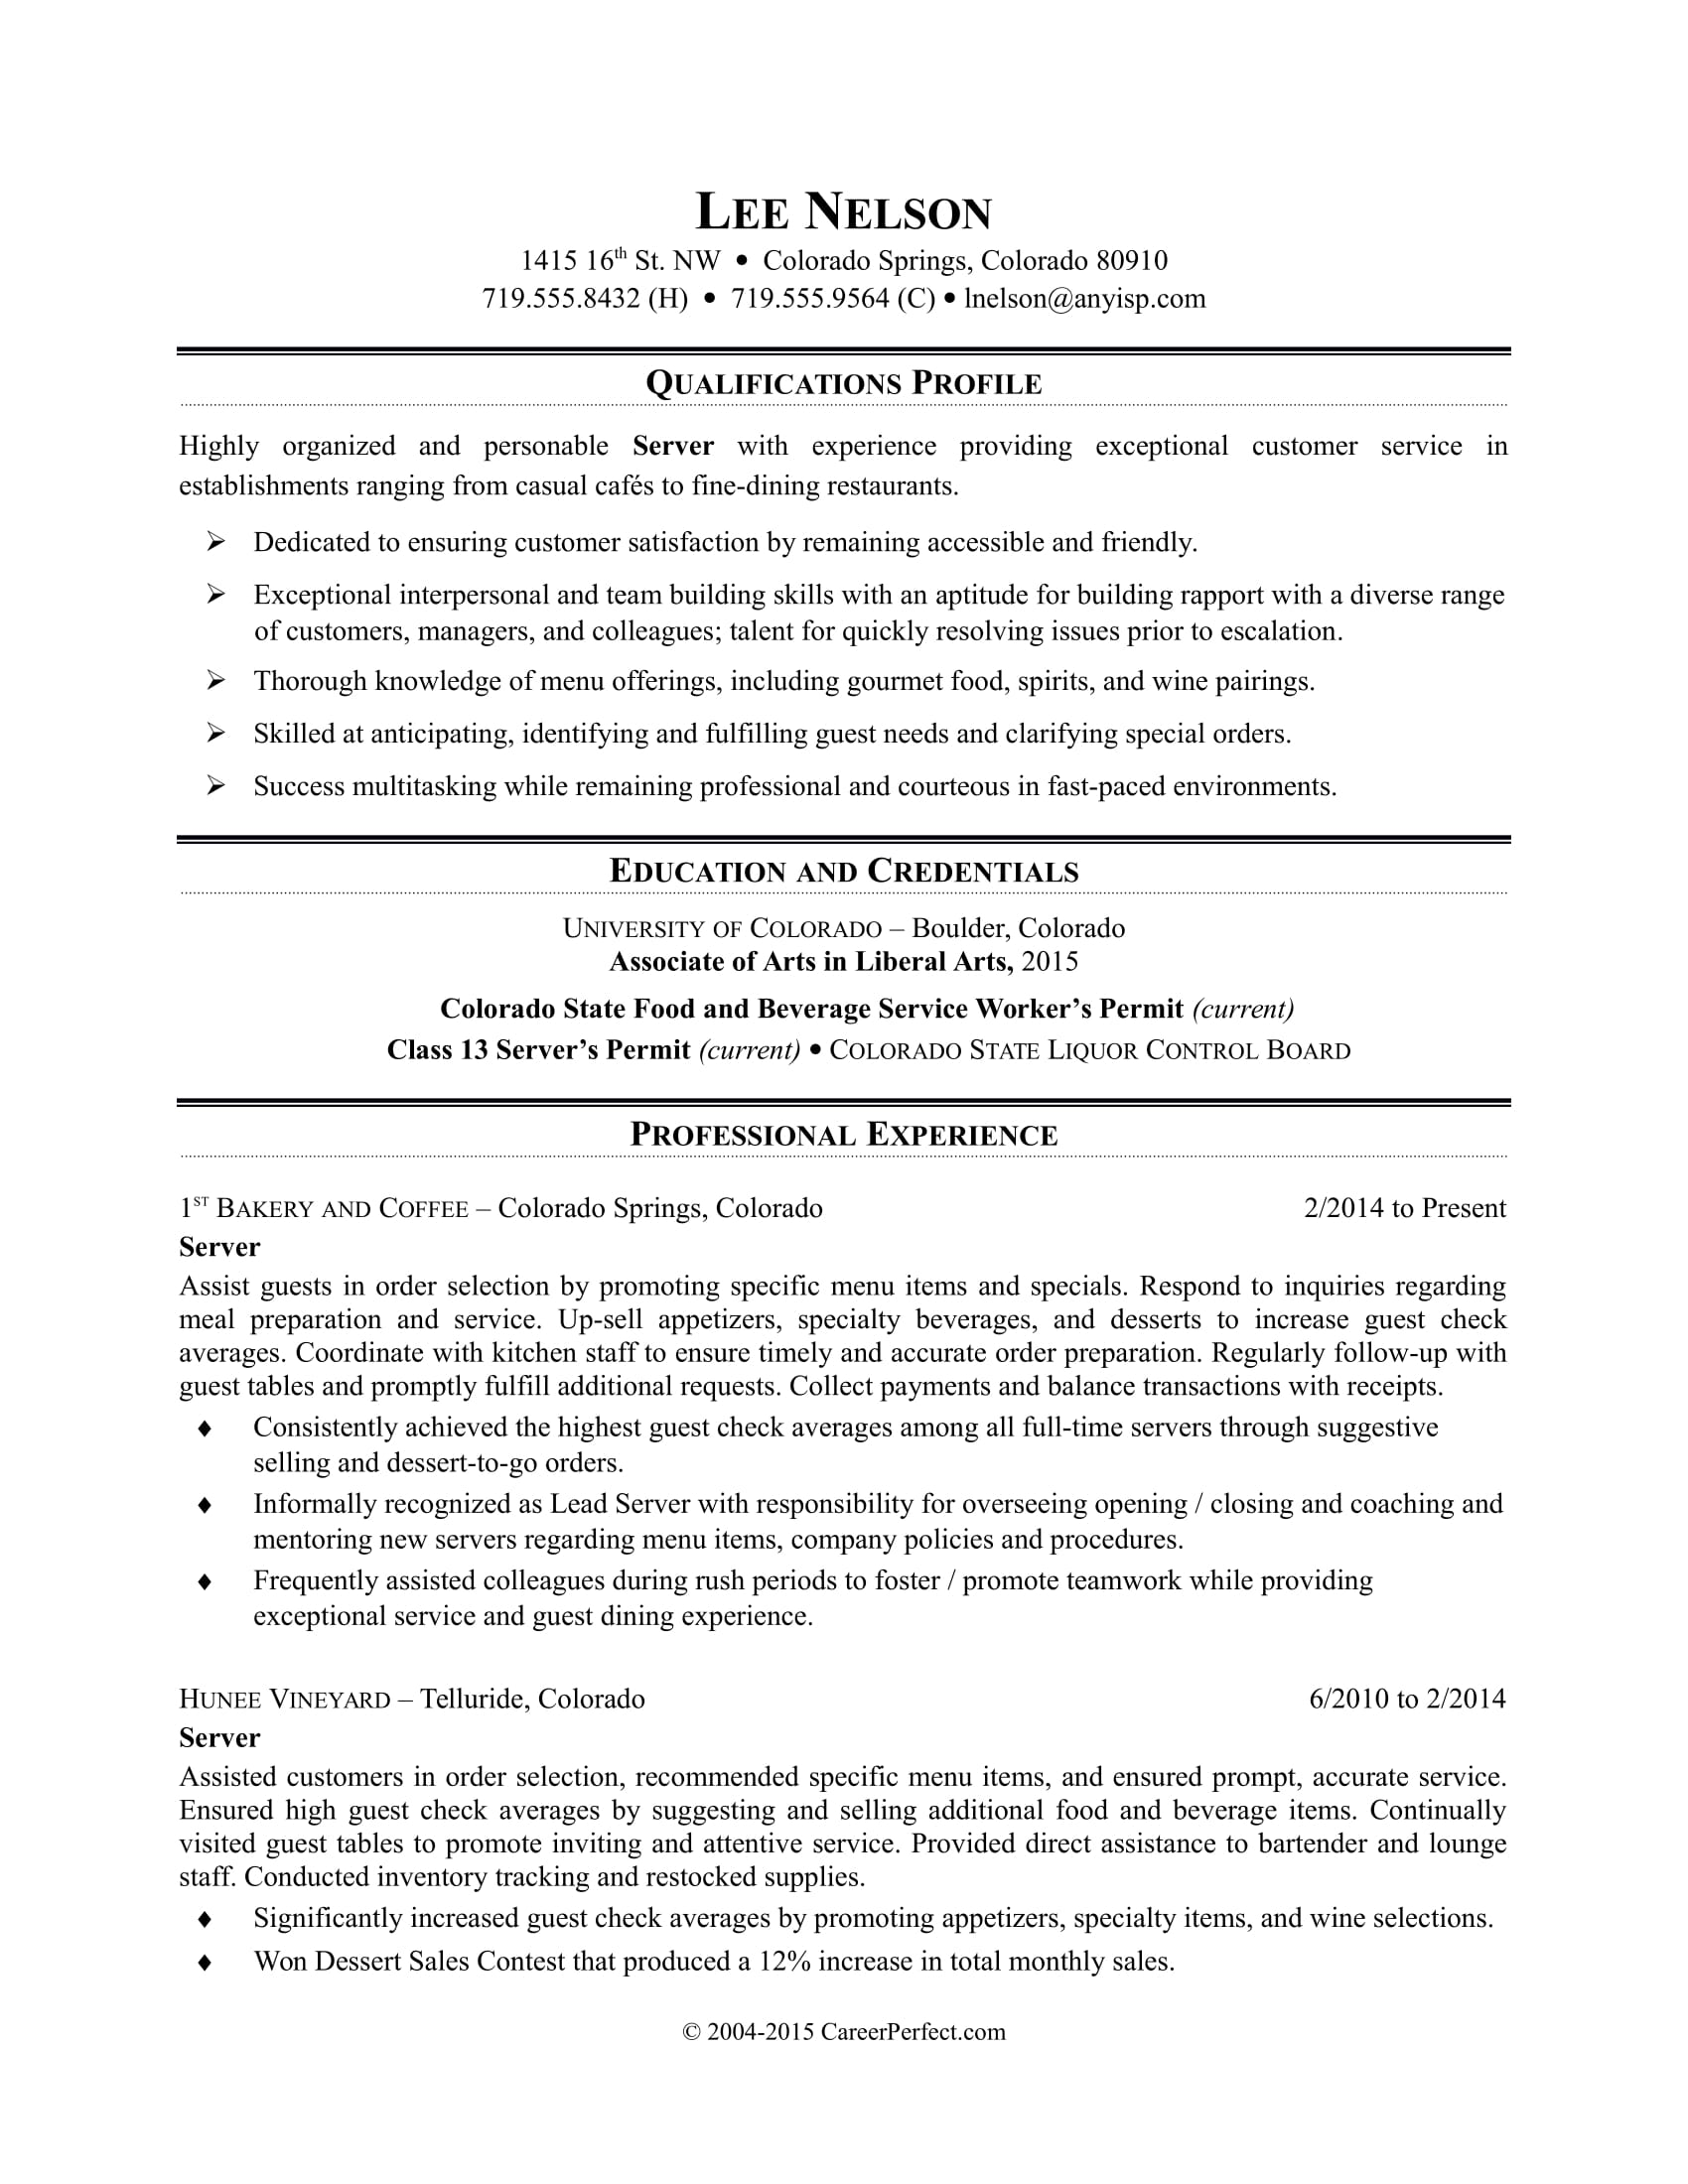 sample resume for a restaurant server - Skills For A Job Resume